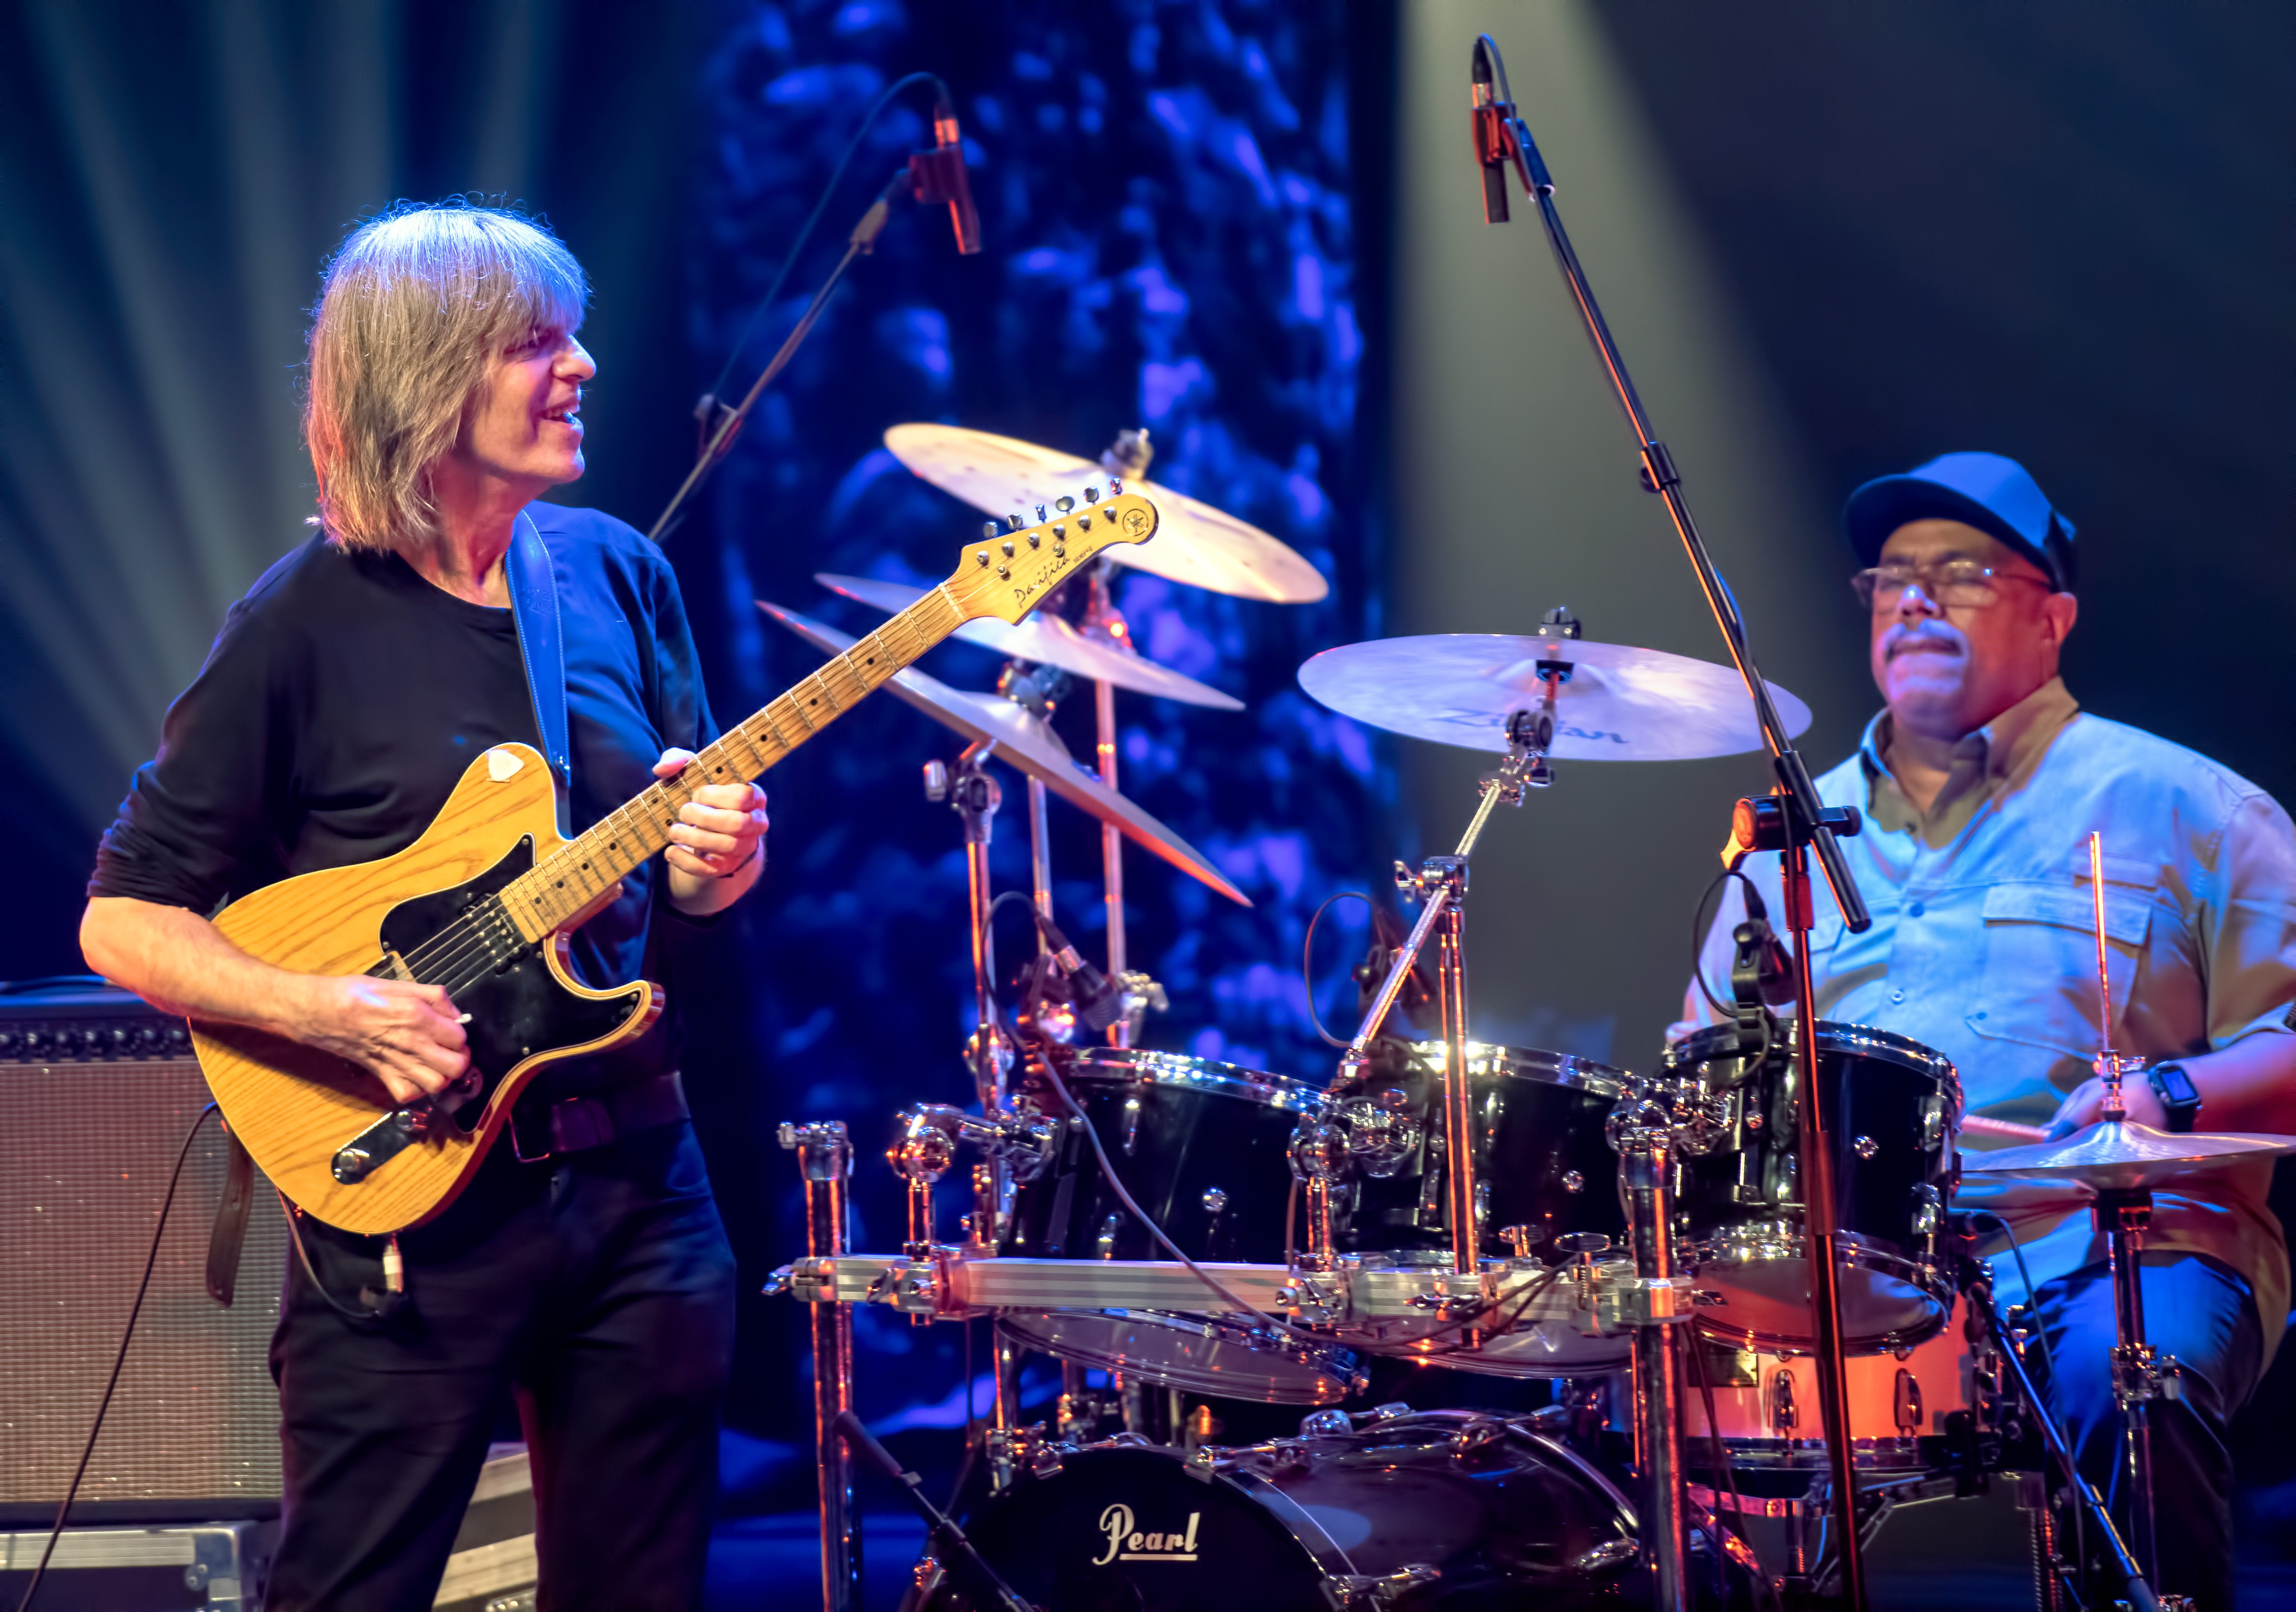 Mike Stern And Dennis Chambers With The Stern/brecker Band At The Montreal International Jazz Festival 2018